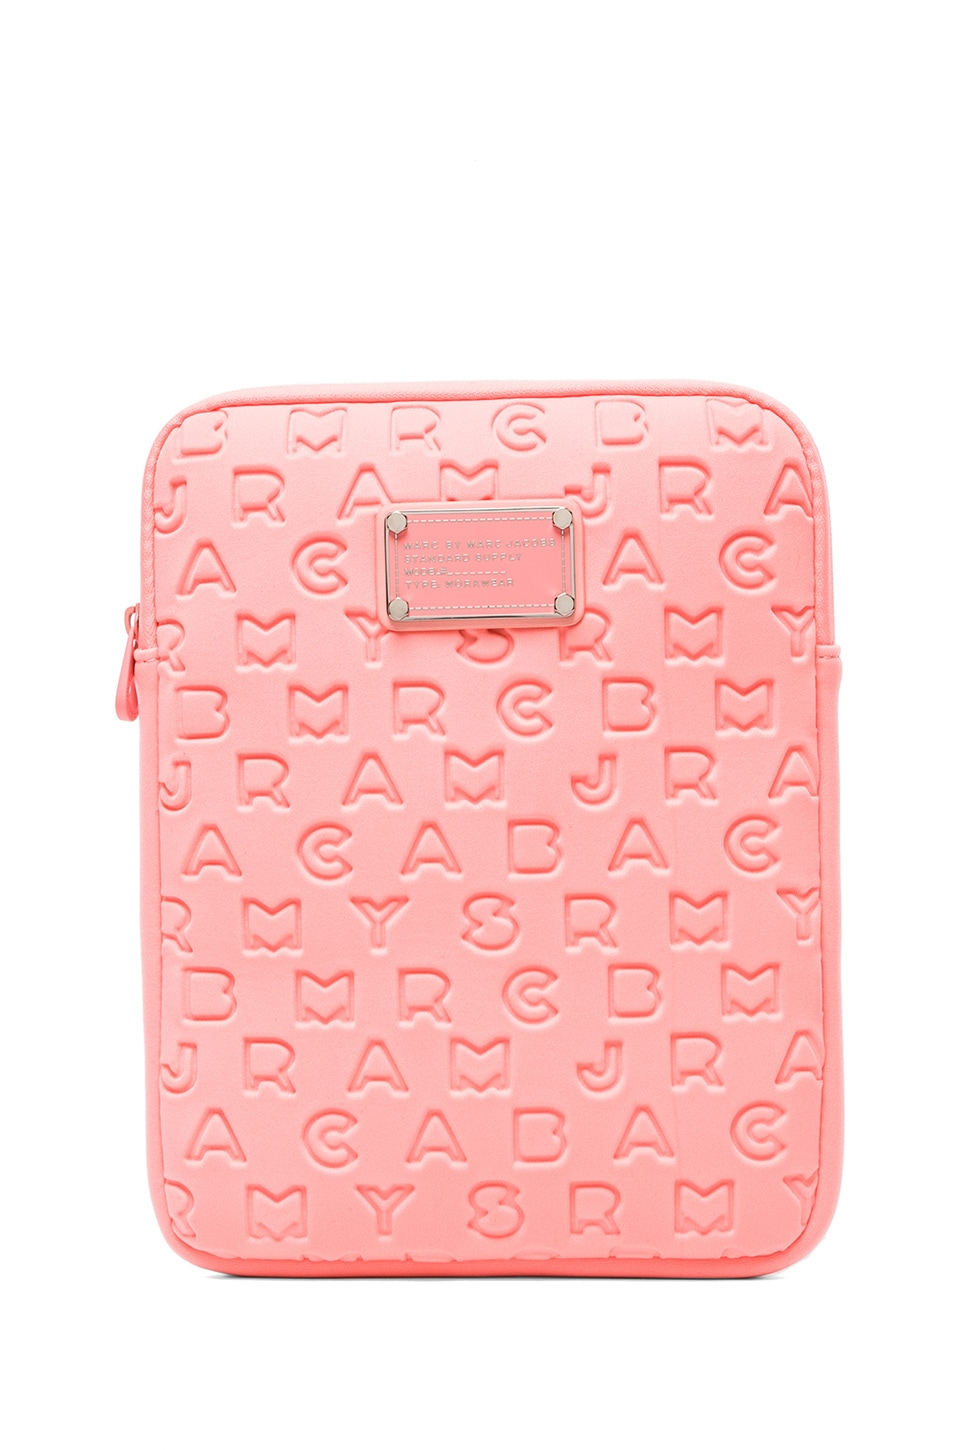 Marc by Marc Jacobs Dreamy Logo Neoprene Tablet Case in Fluoro Coral